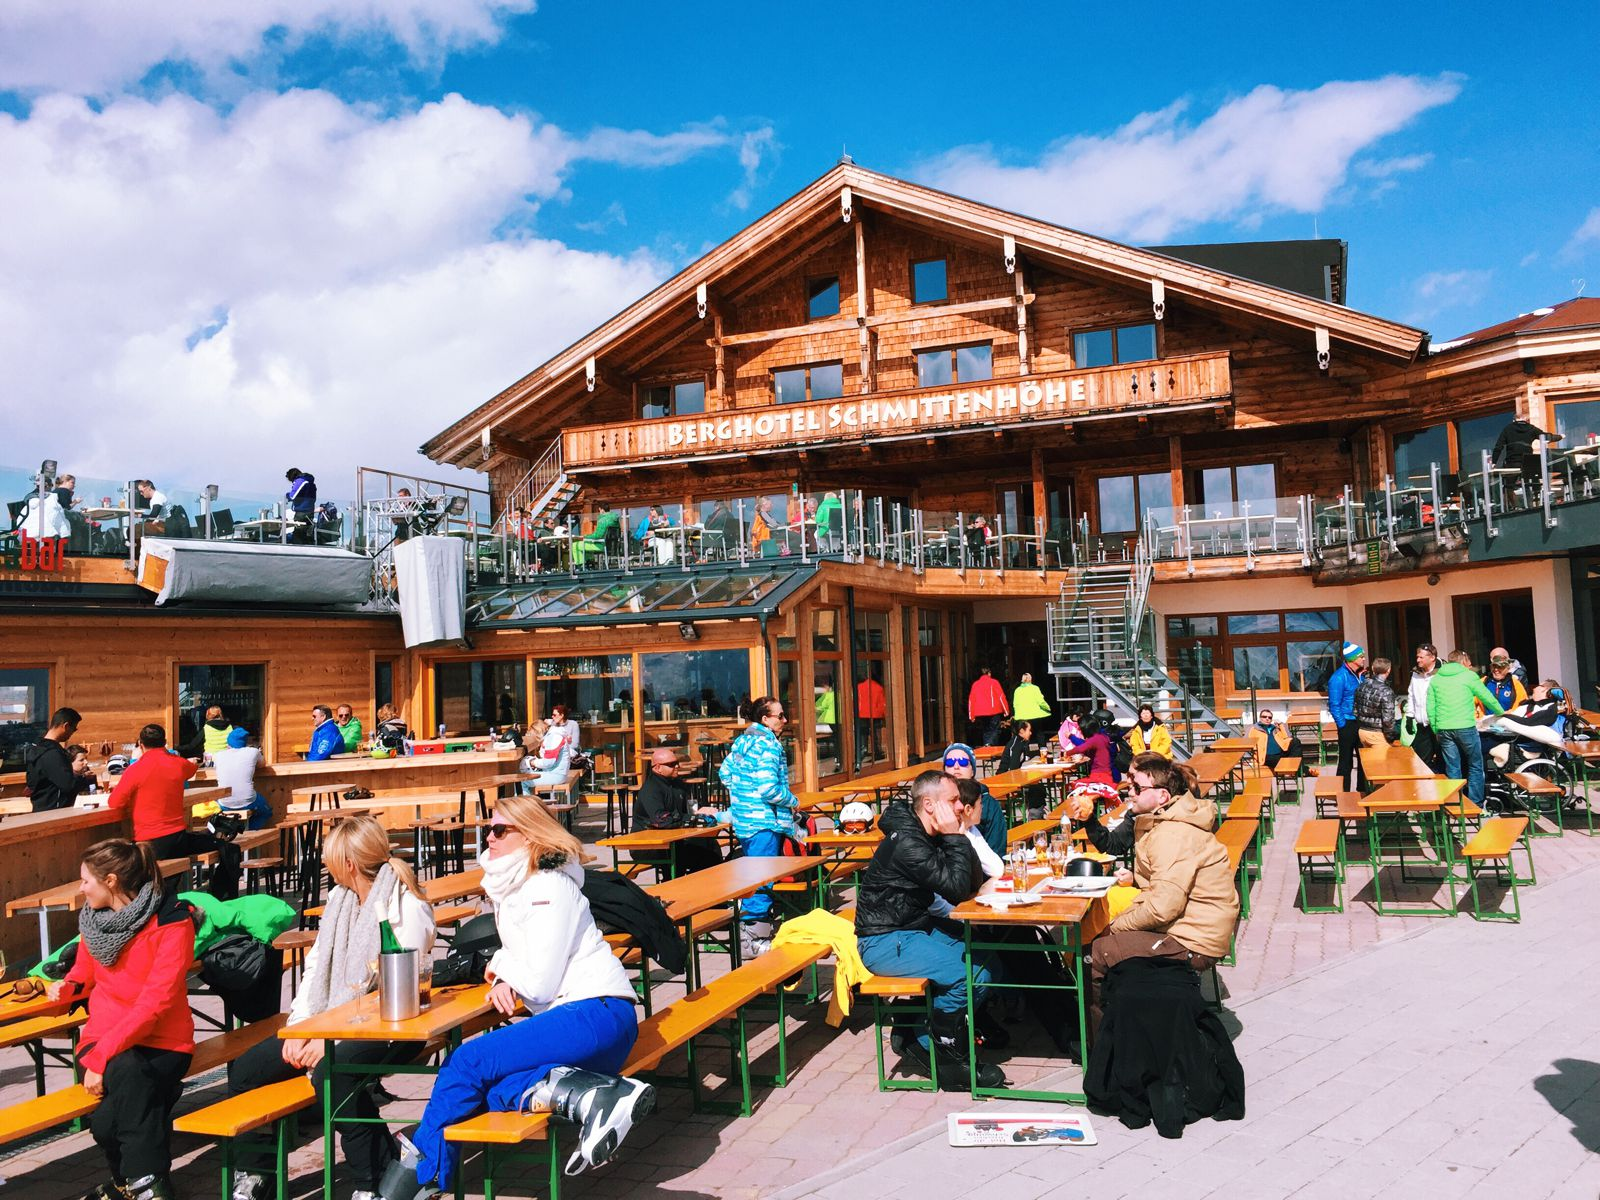 7 Photos from Zell Am See, Austria! (5)